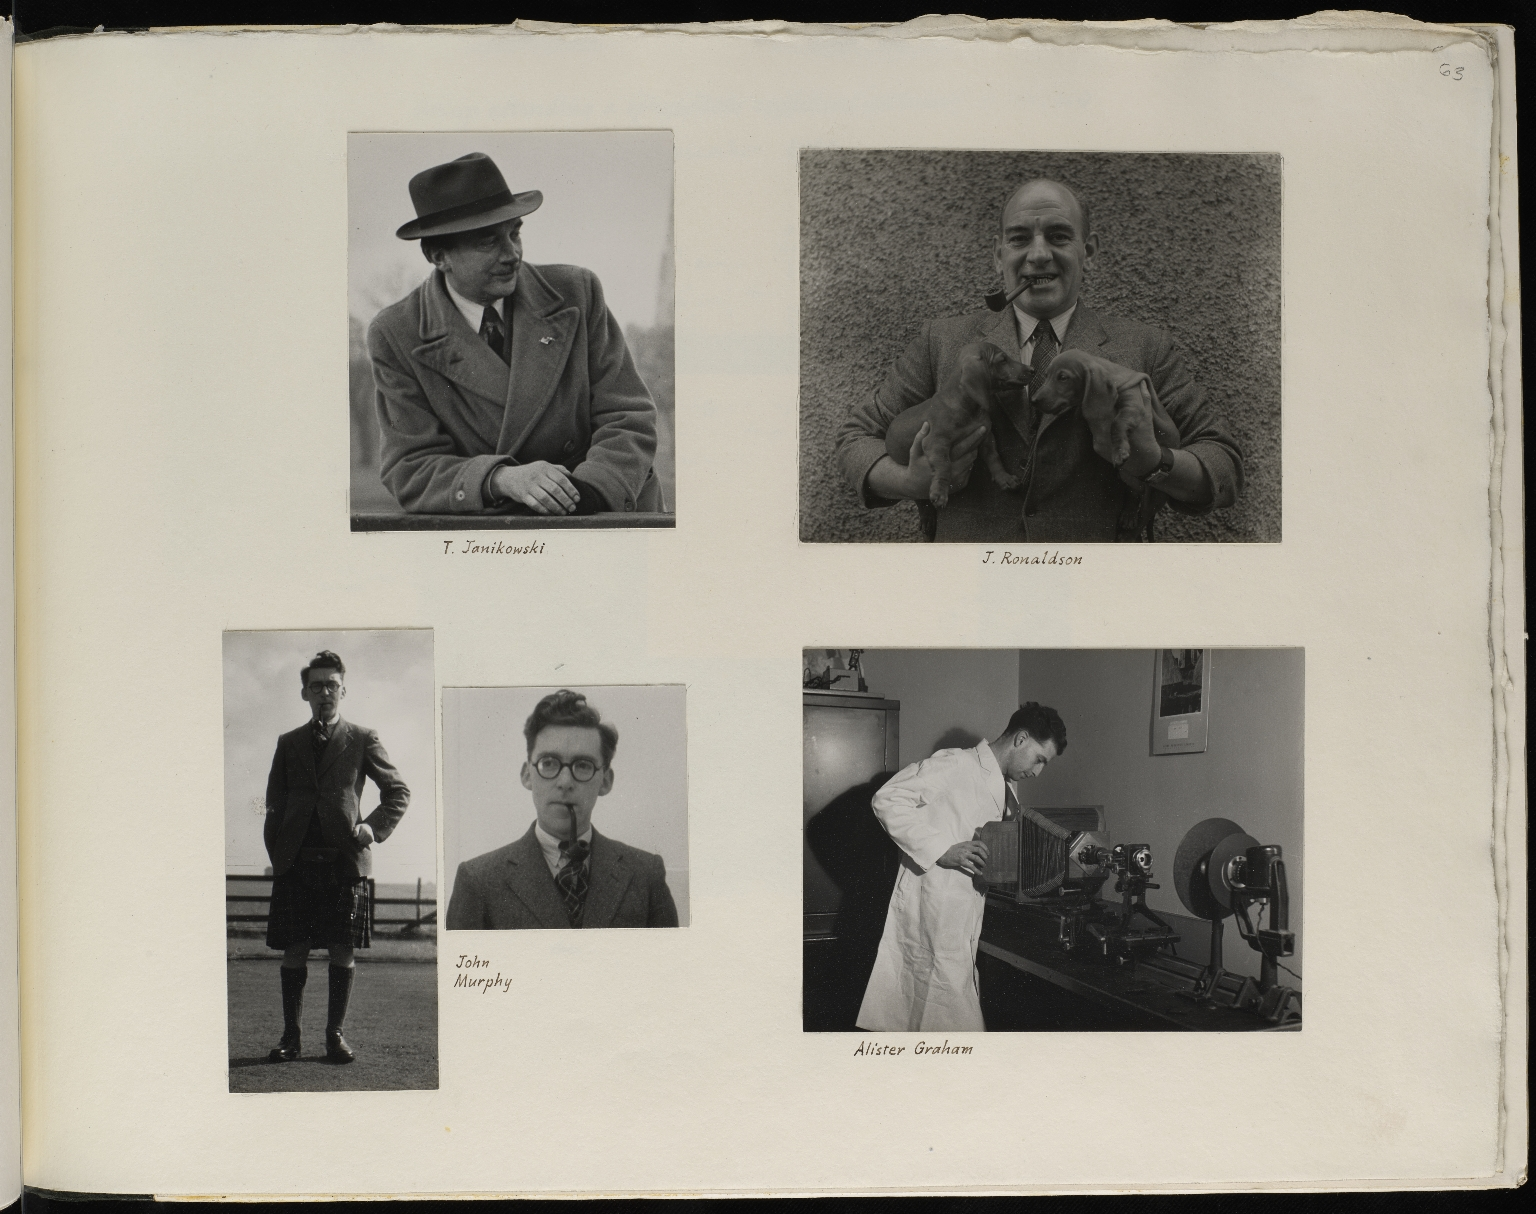 Photograph album presented to Waddington by Institute of Animal Genetics staff on his 50th birthday, p.63